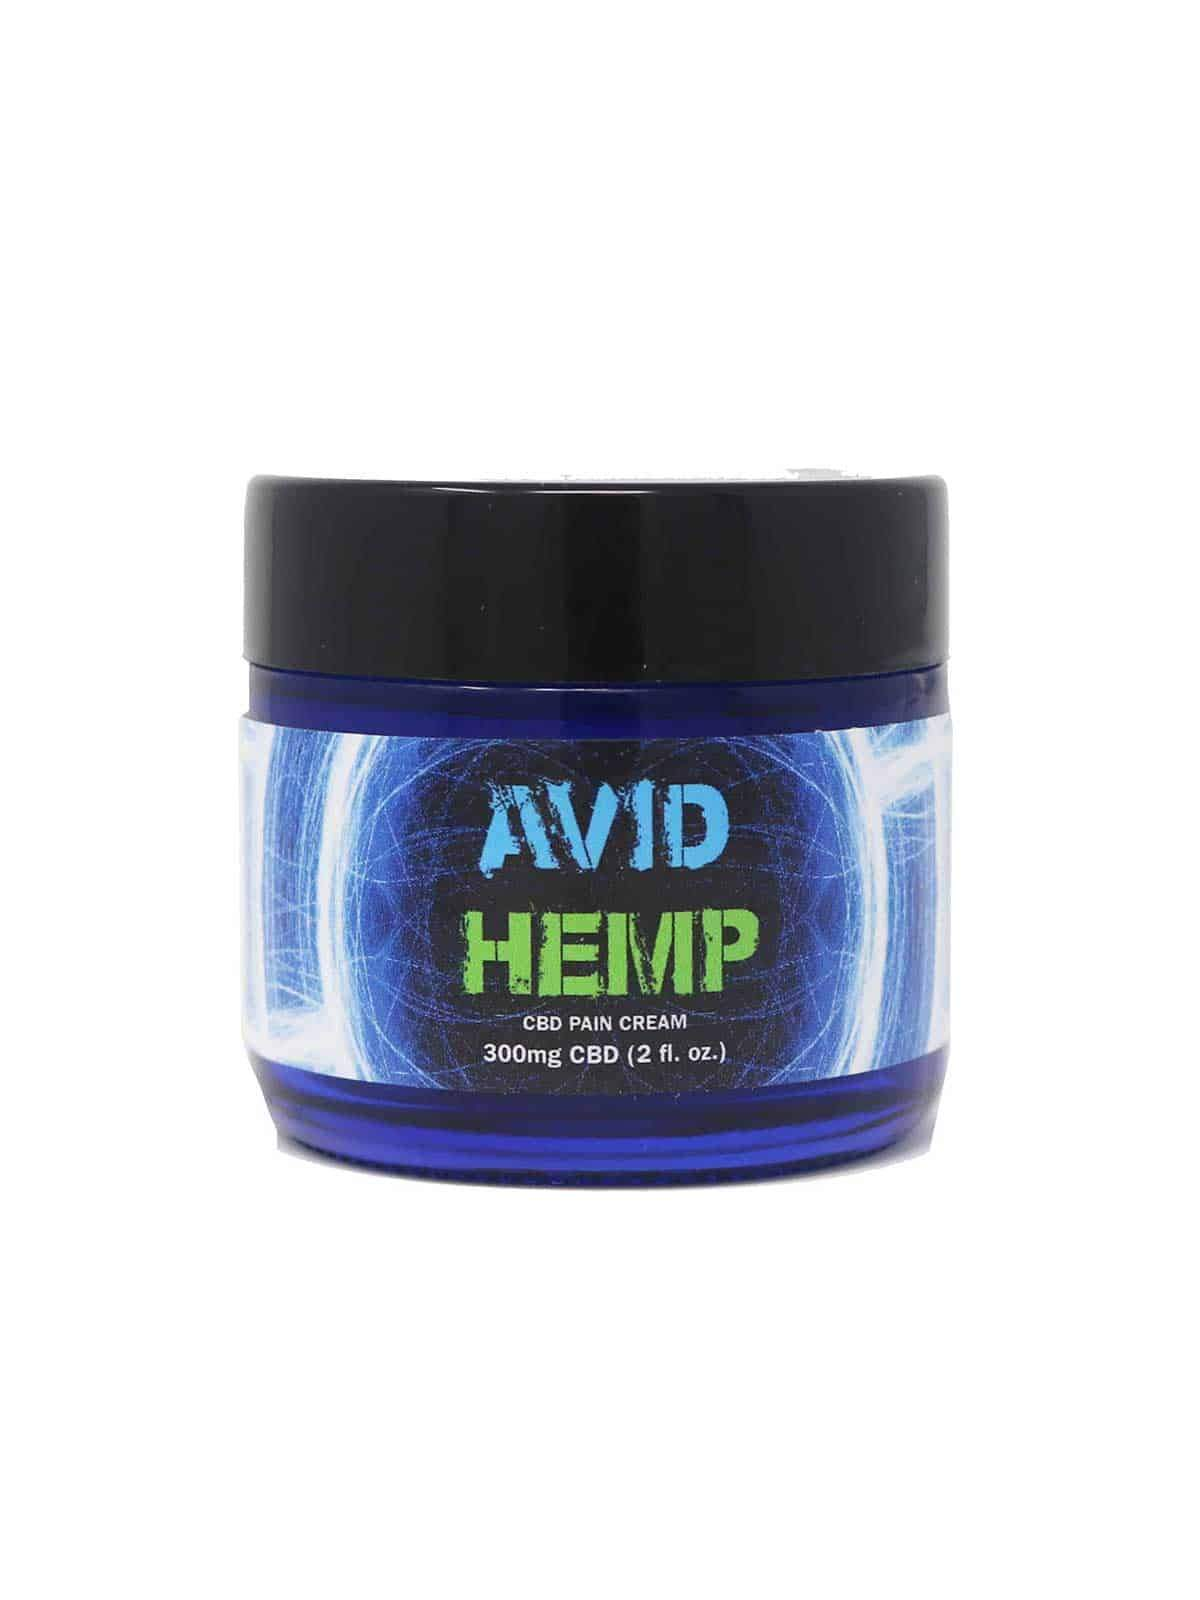 300MG CBD PAIN CREAM